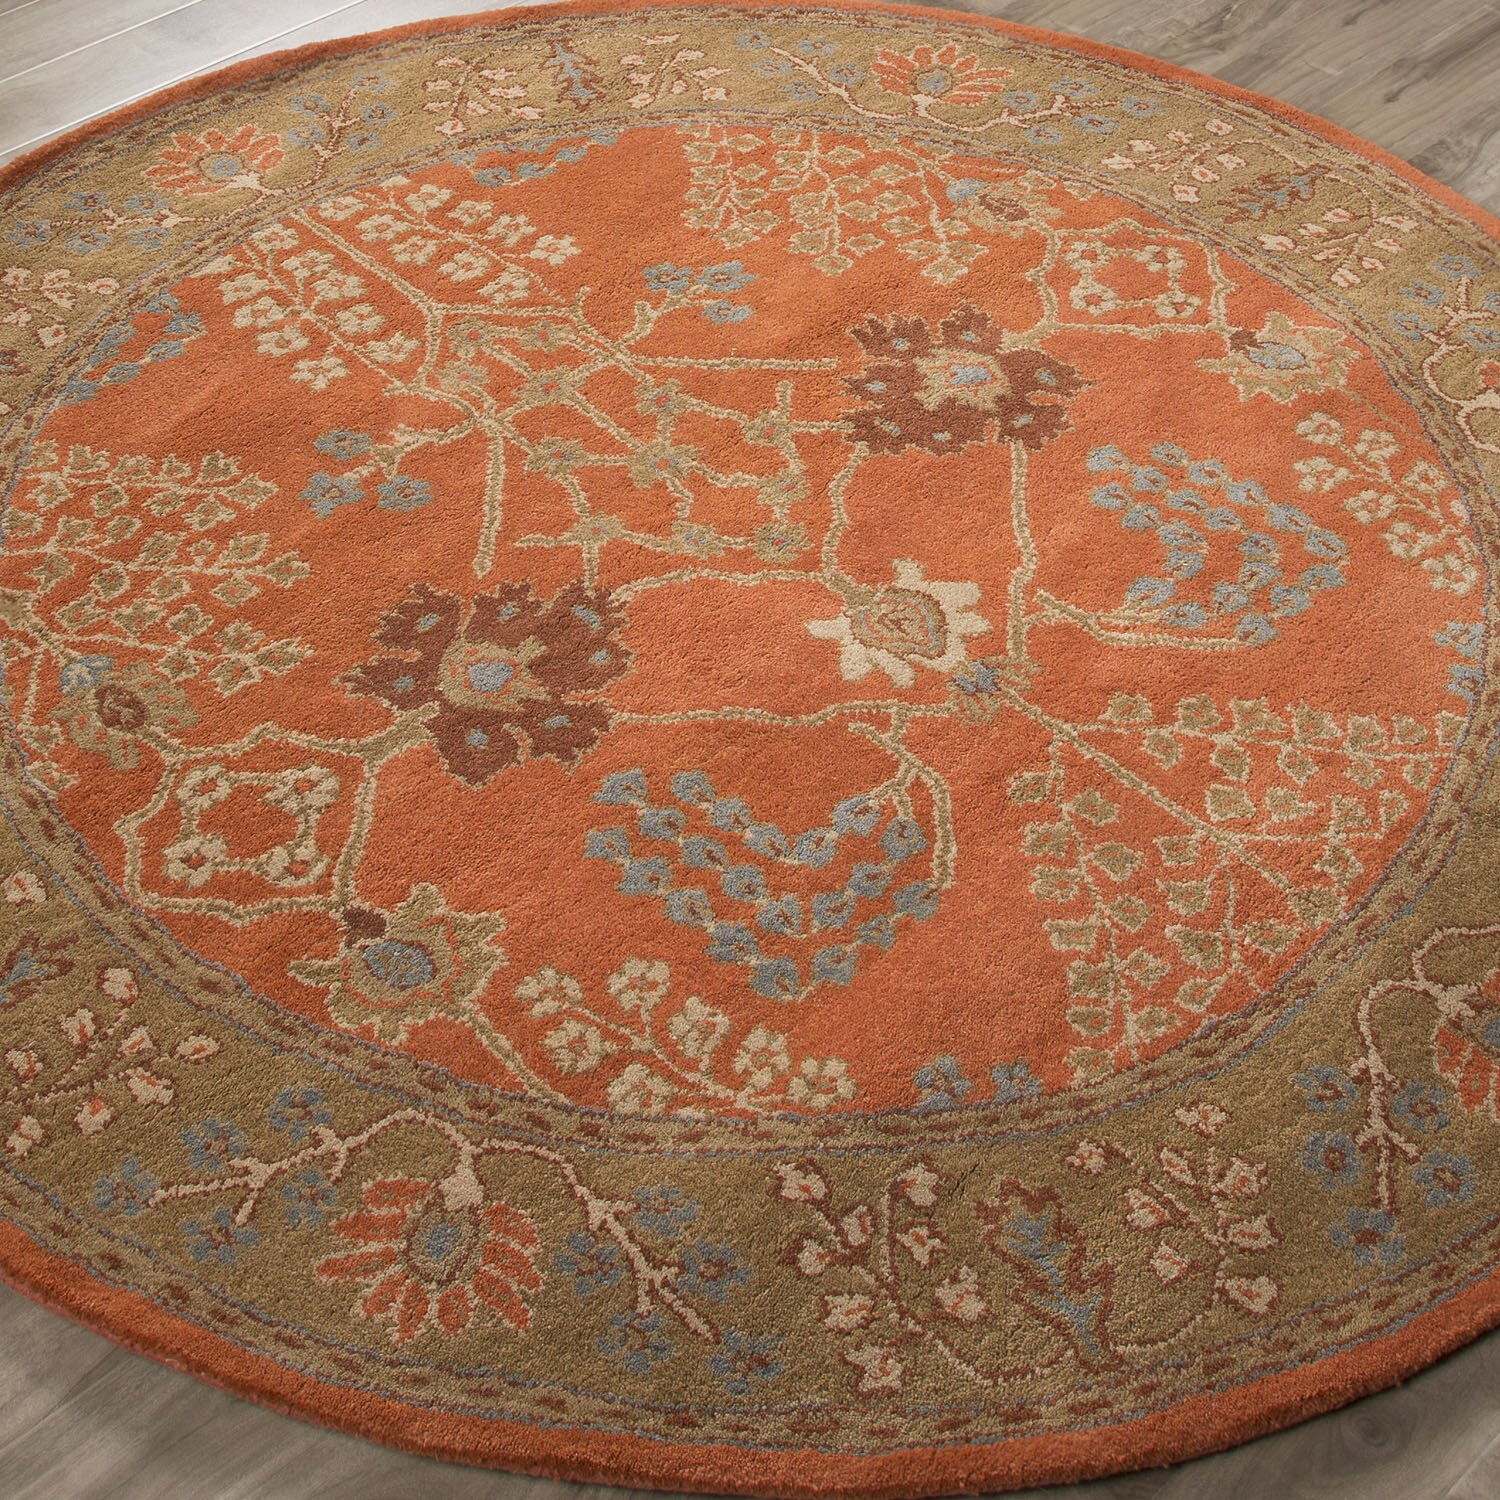 jaipurliving poeme chambery orange rust gold brown area rug reviews wayfair. Black Bedroom Furniture Sets. Home Design Ideas